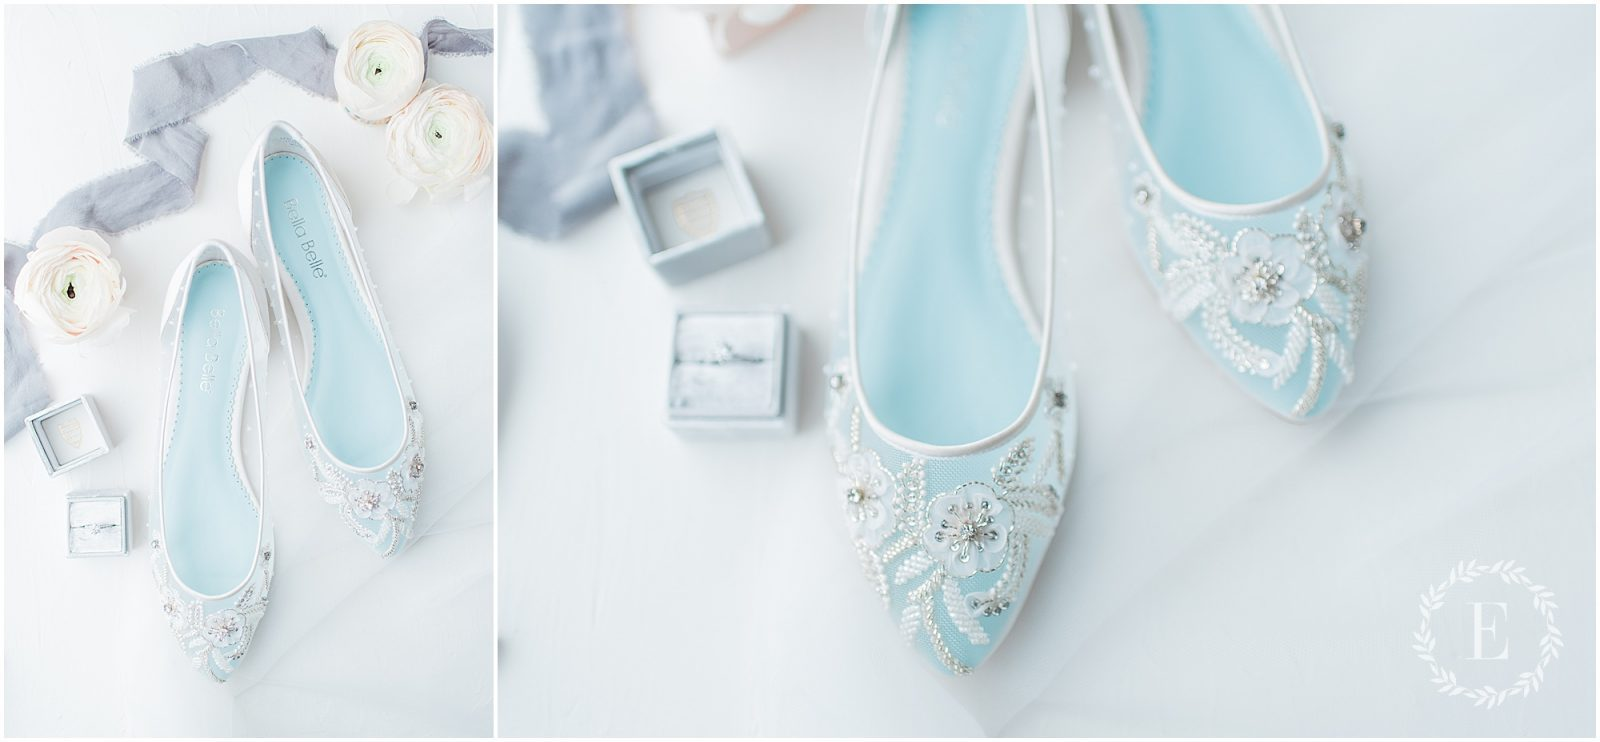 64 - Bella Belle for Fairy Dreams Bridal - PhotosbyEmmaH 2019- something blue wedding flats with pearl embroidery